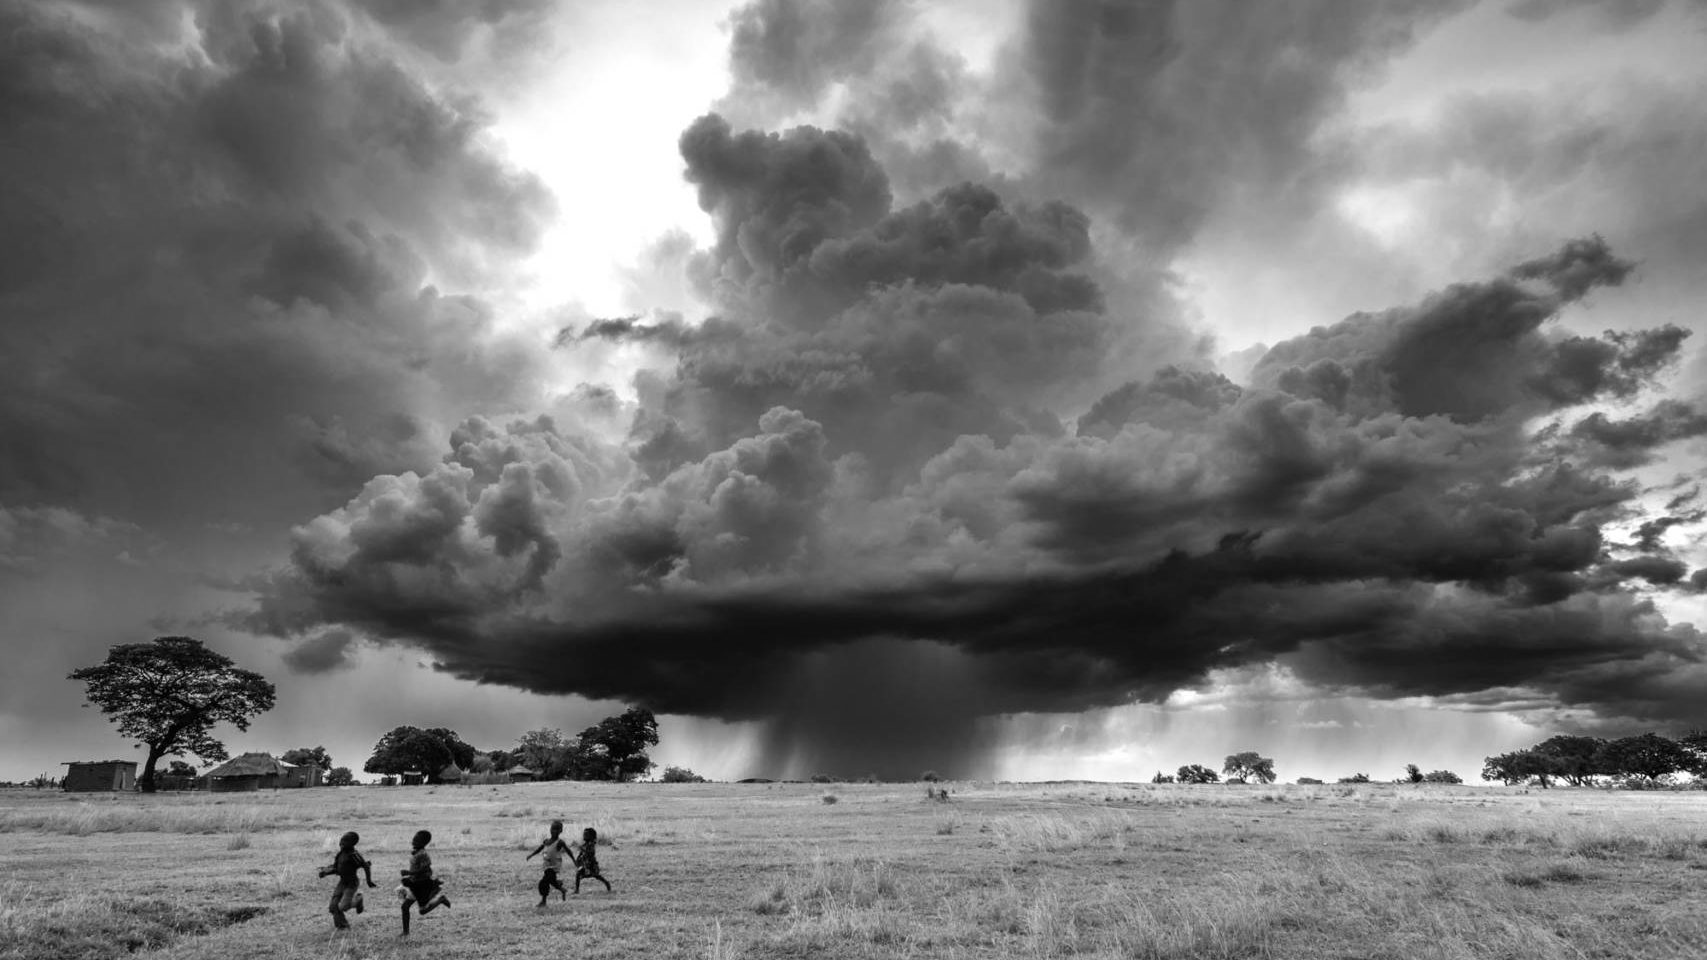 One of our favorite photos of 2016 is of a dramatic storm in Zambia.